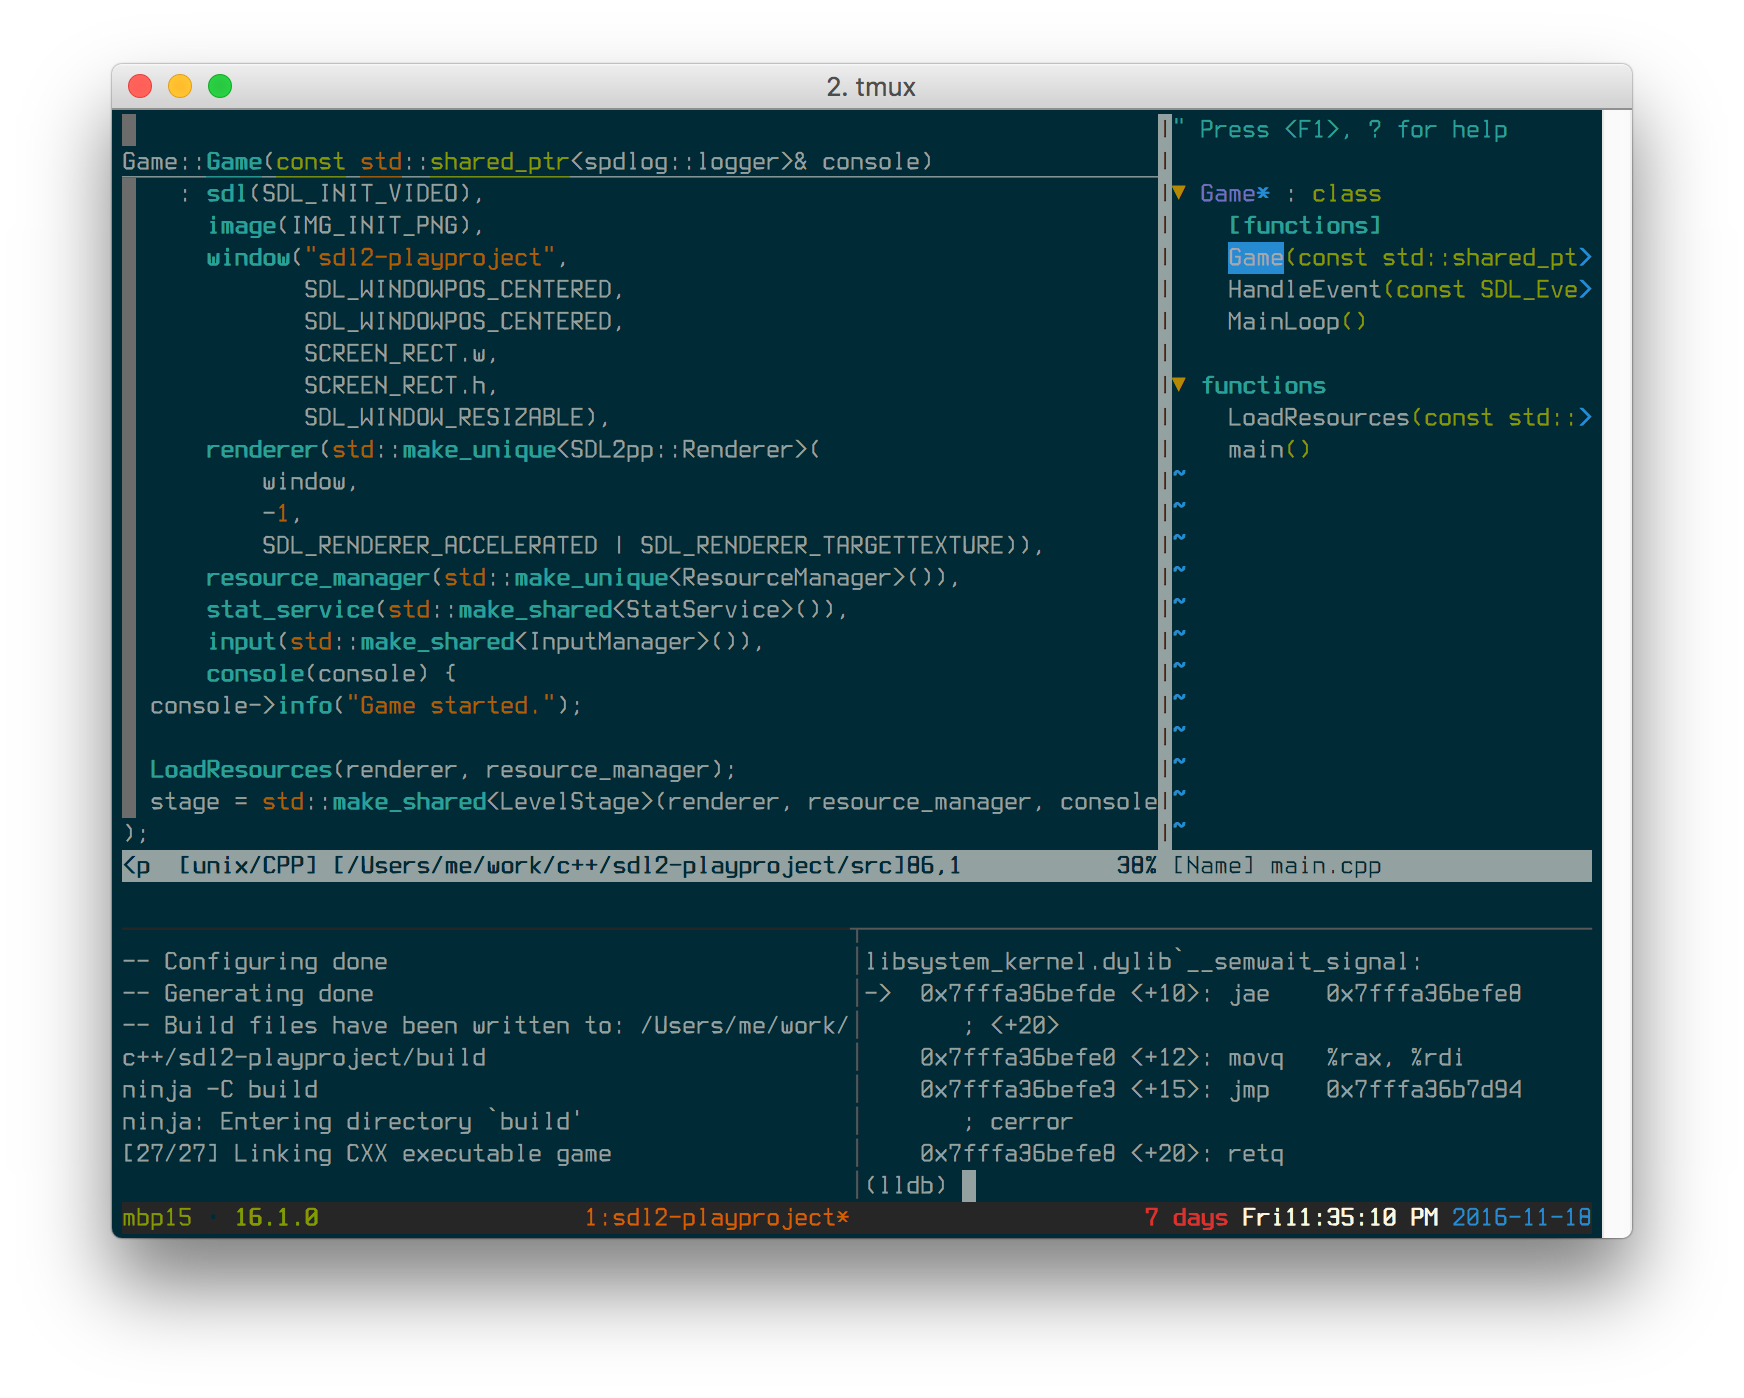 vim + building a C++ project w/ CMake + Ninja using entr to rebuild on file changes, lldb bottom right